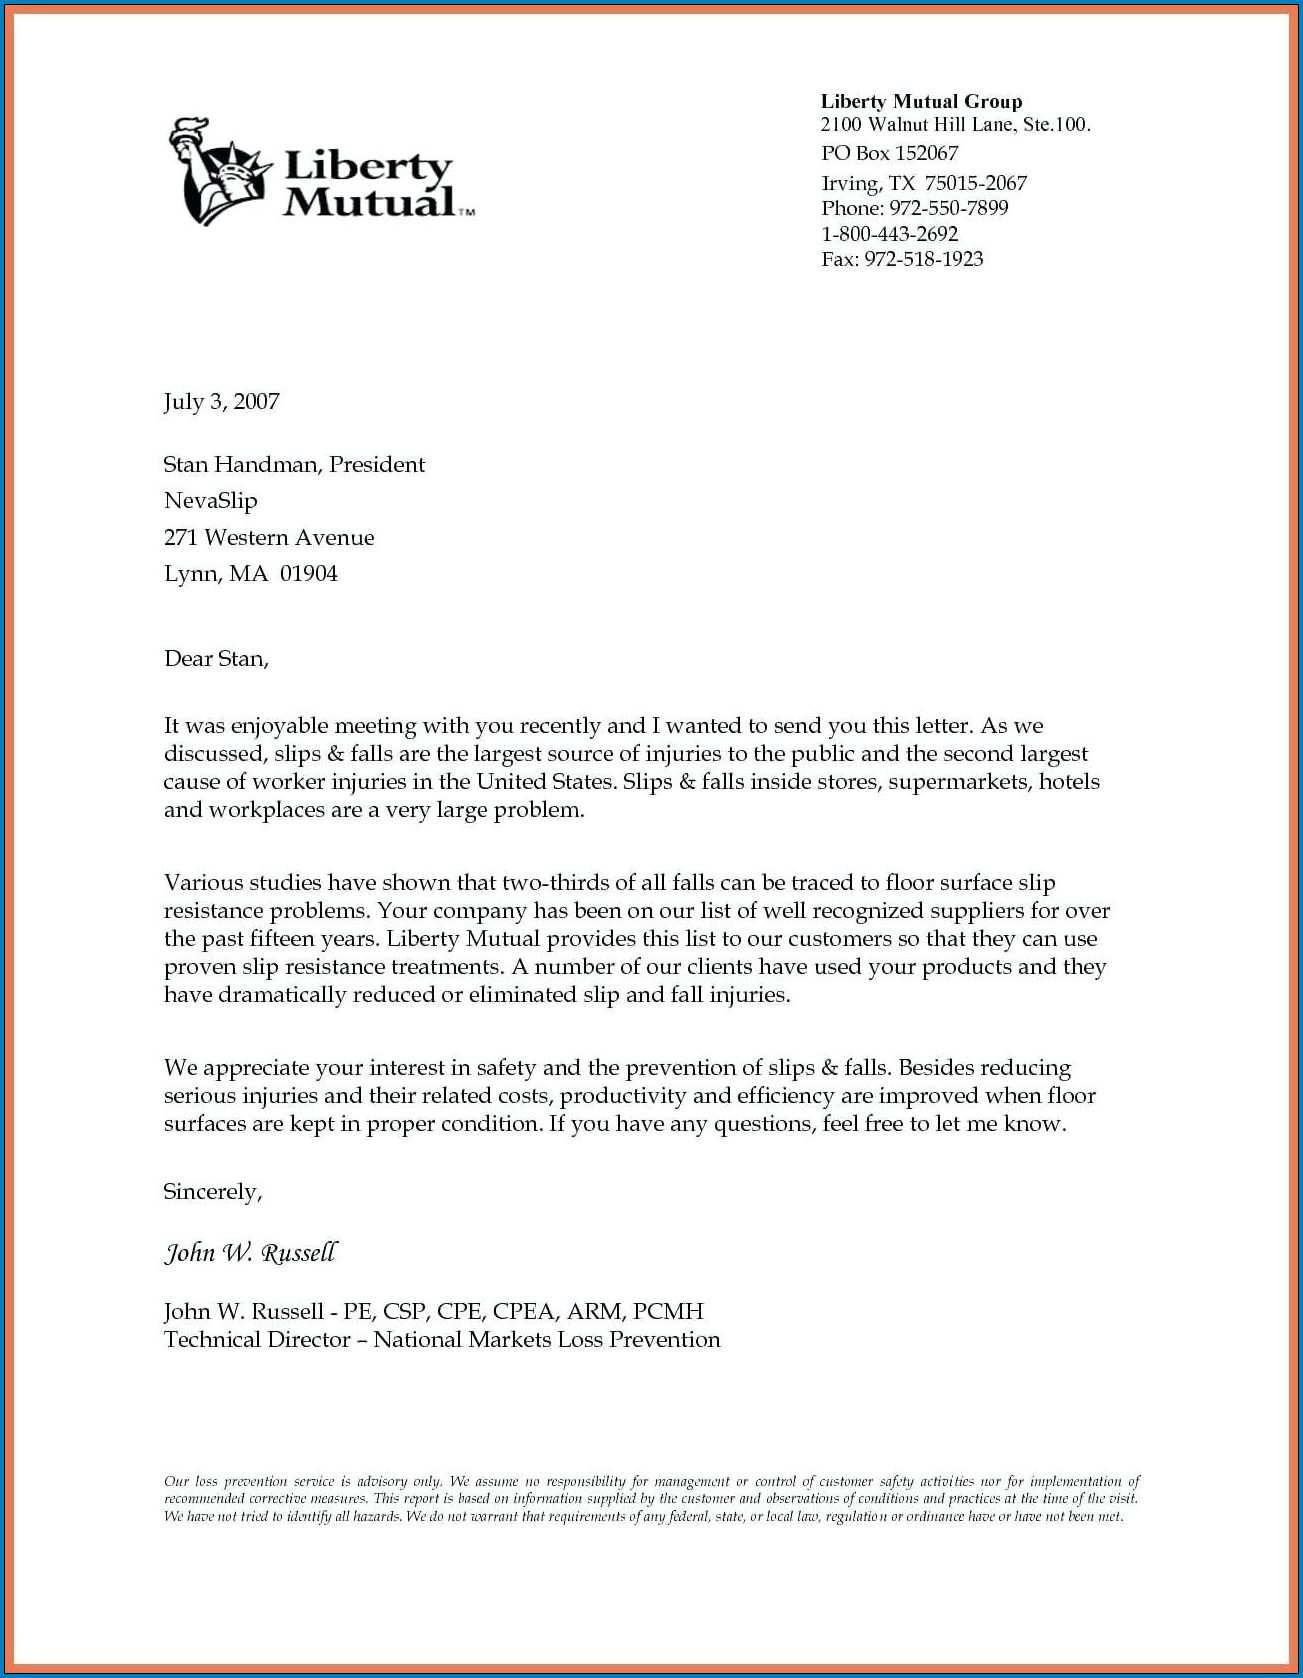 Sample of Business Letter Template